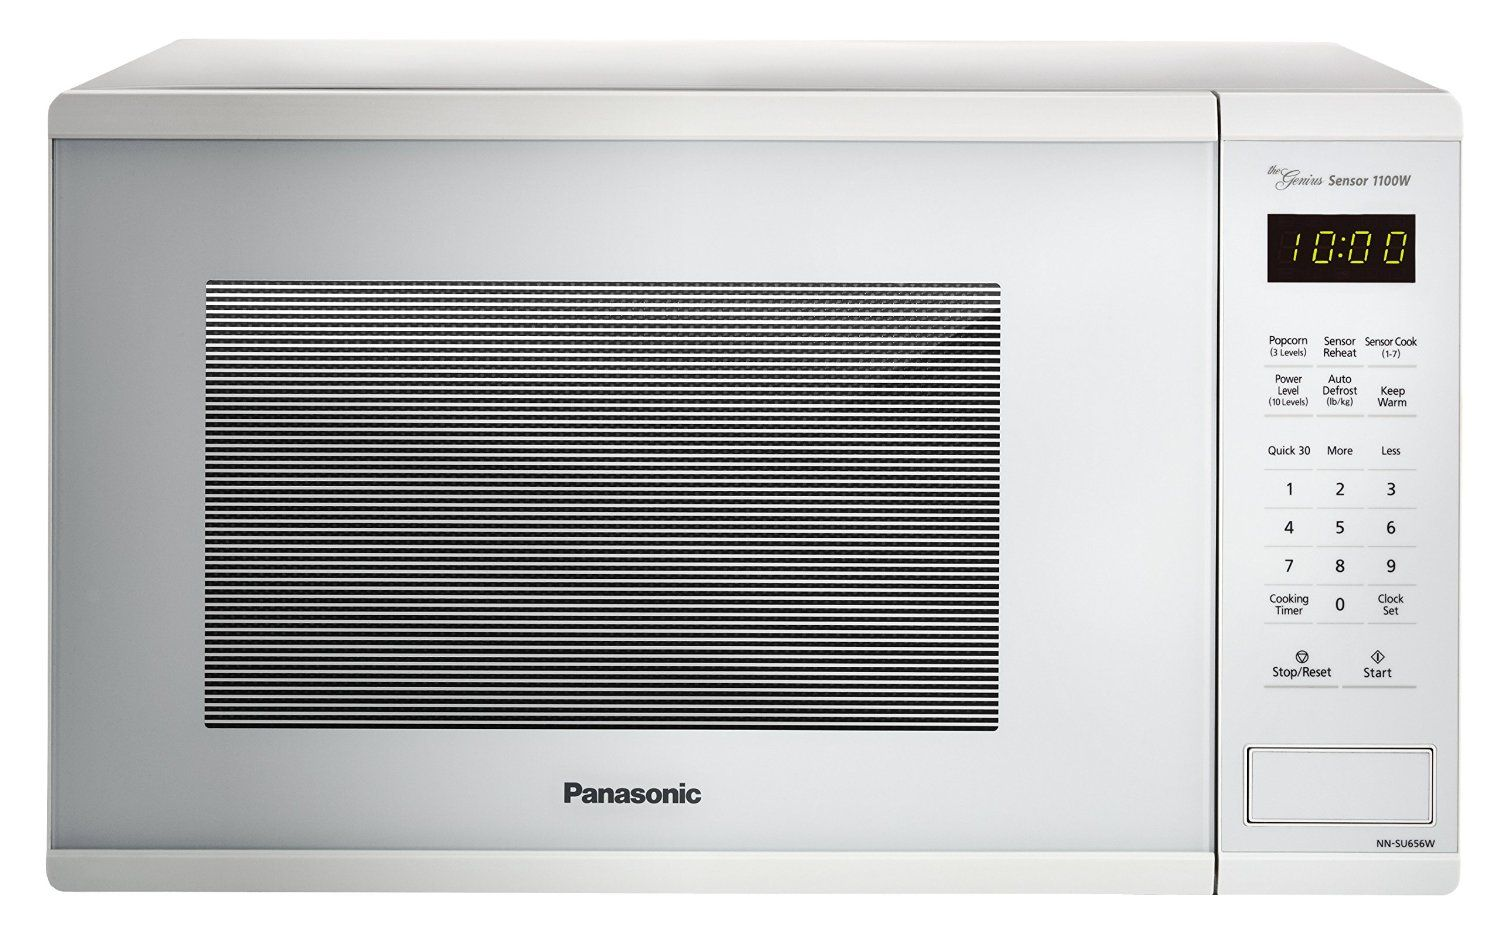 Panasonic Nn Su656w Countertop Microwave Oven With Genius Cooking Sensor And Popcorn Button 1 3 Countertop Microwave Countertop Microwave Oven Microwave Oven